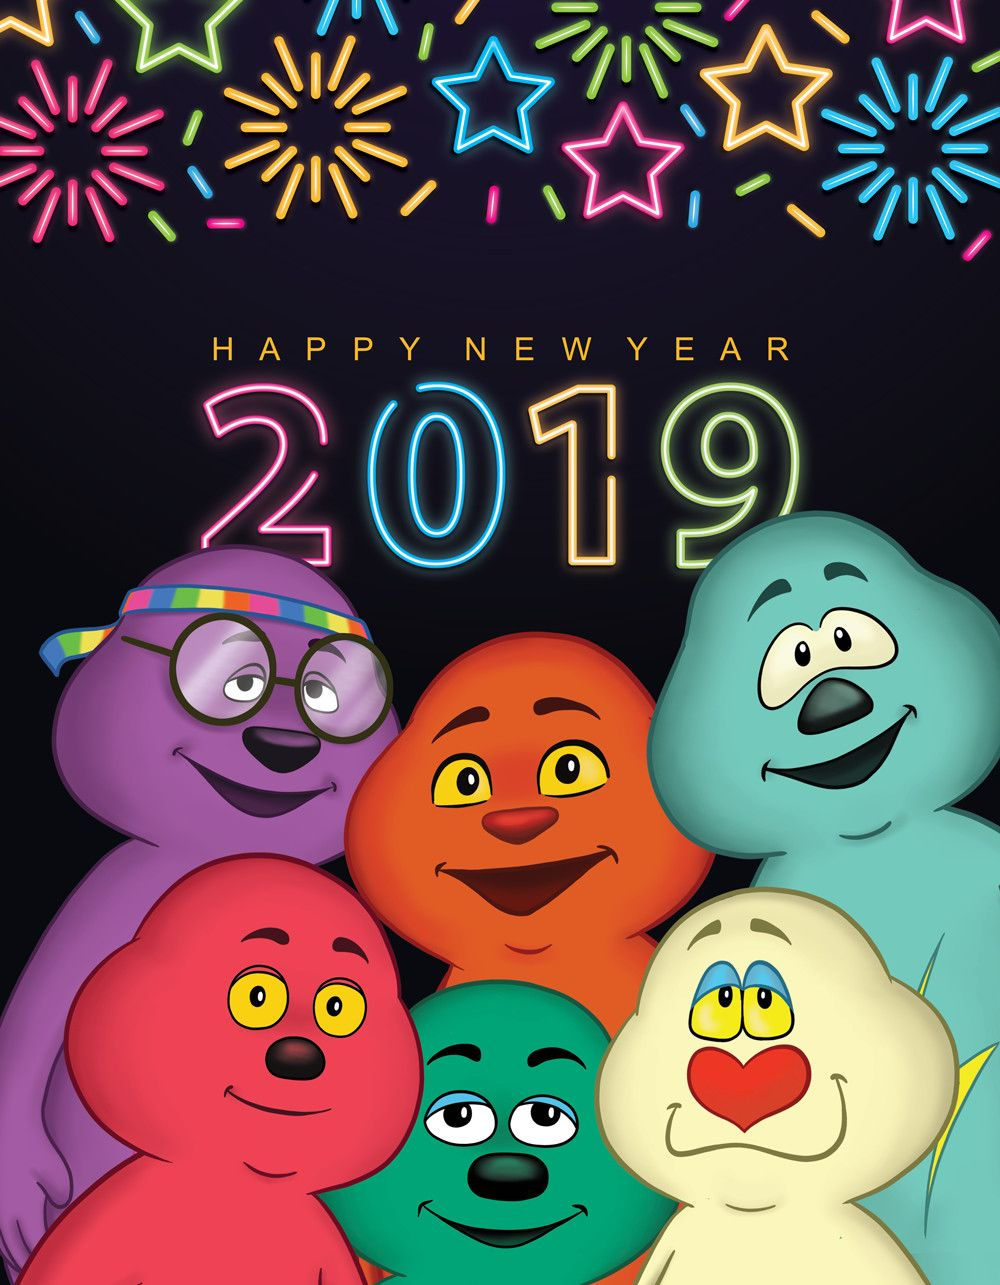 Happy New Year to all our friends. We wish you good health